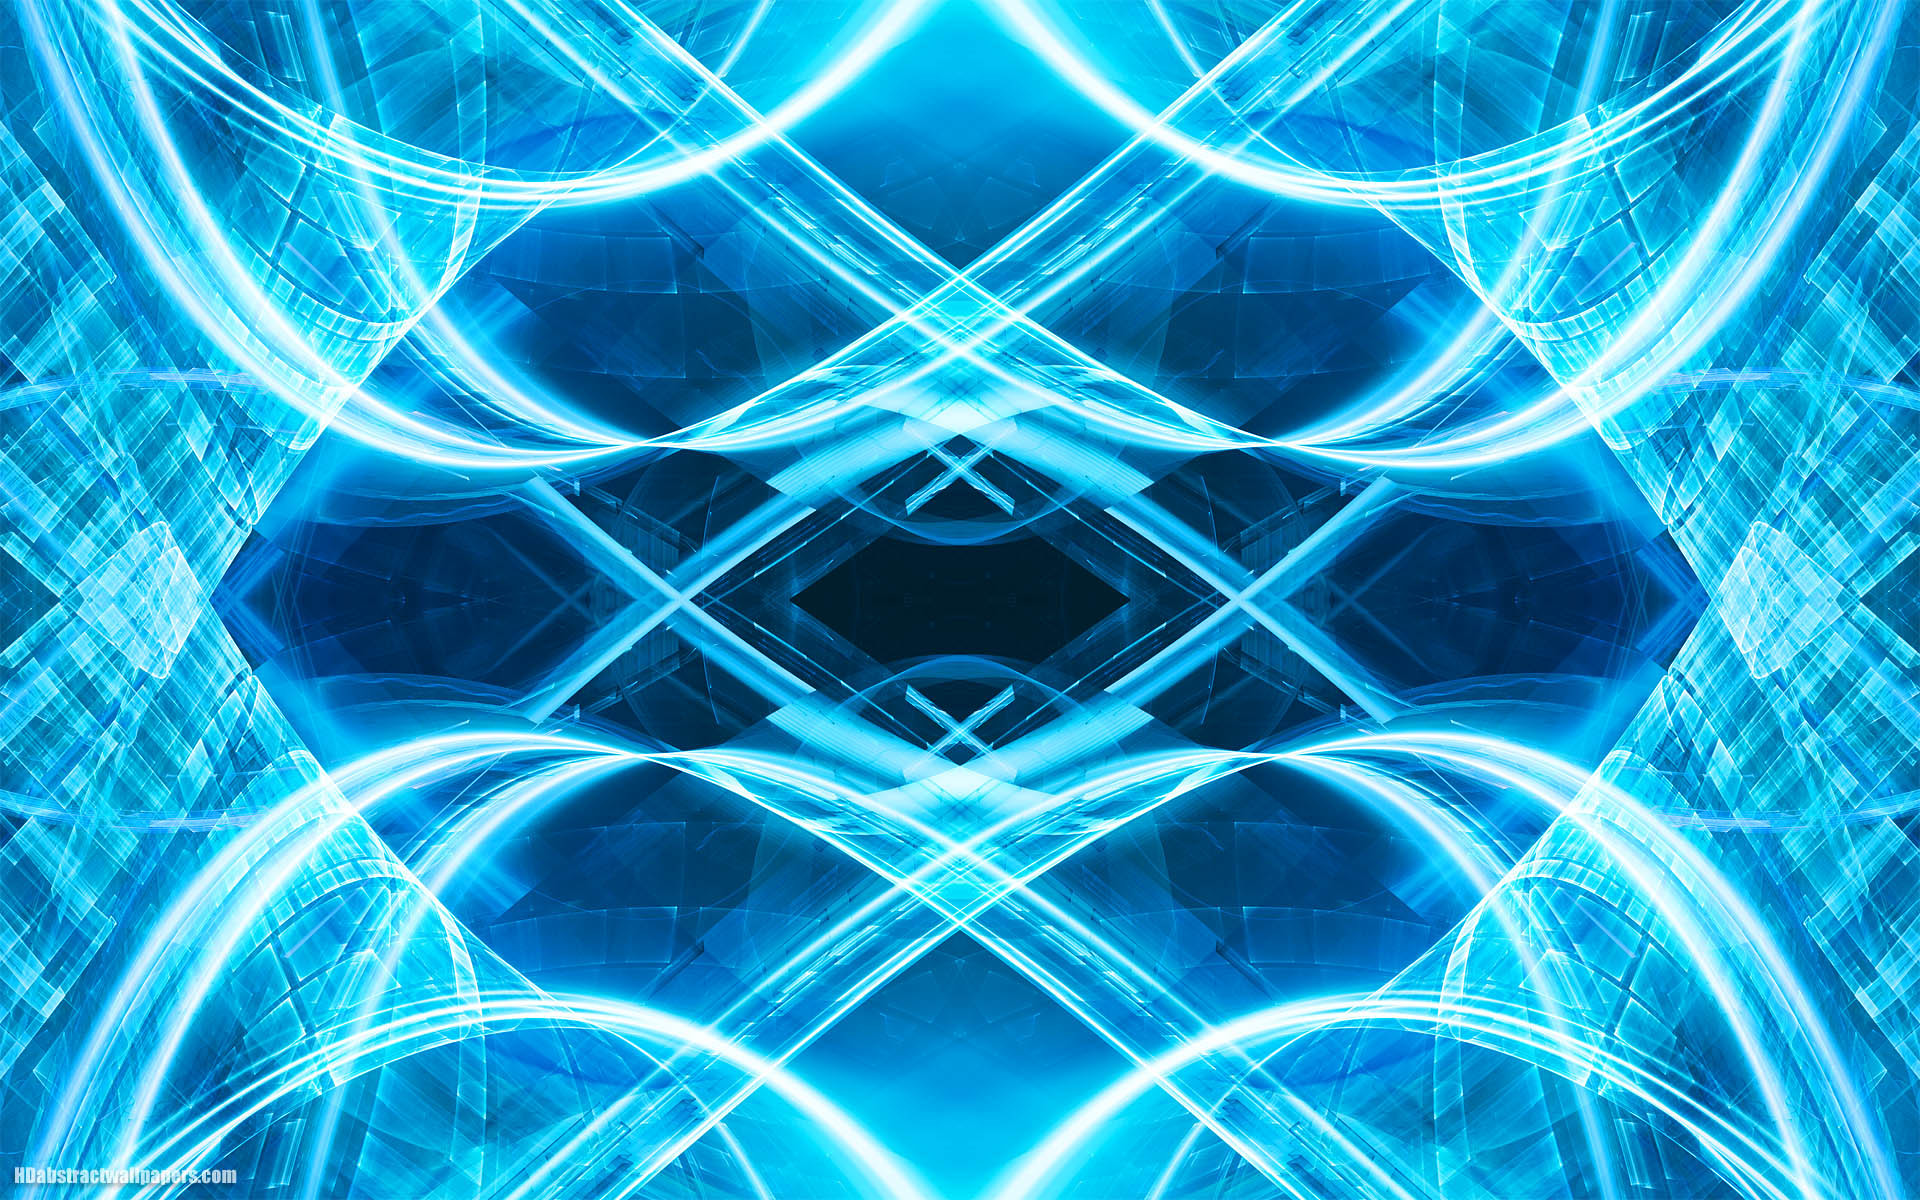 Abstract blue backgrounds with lumi.